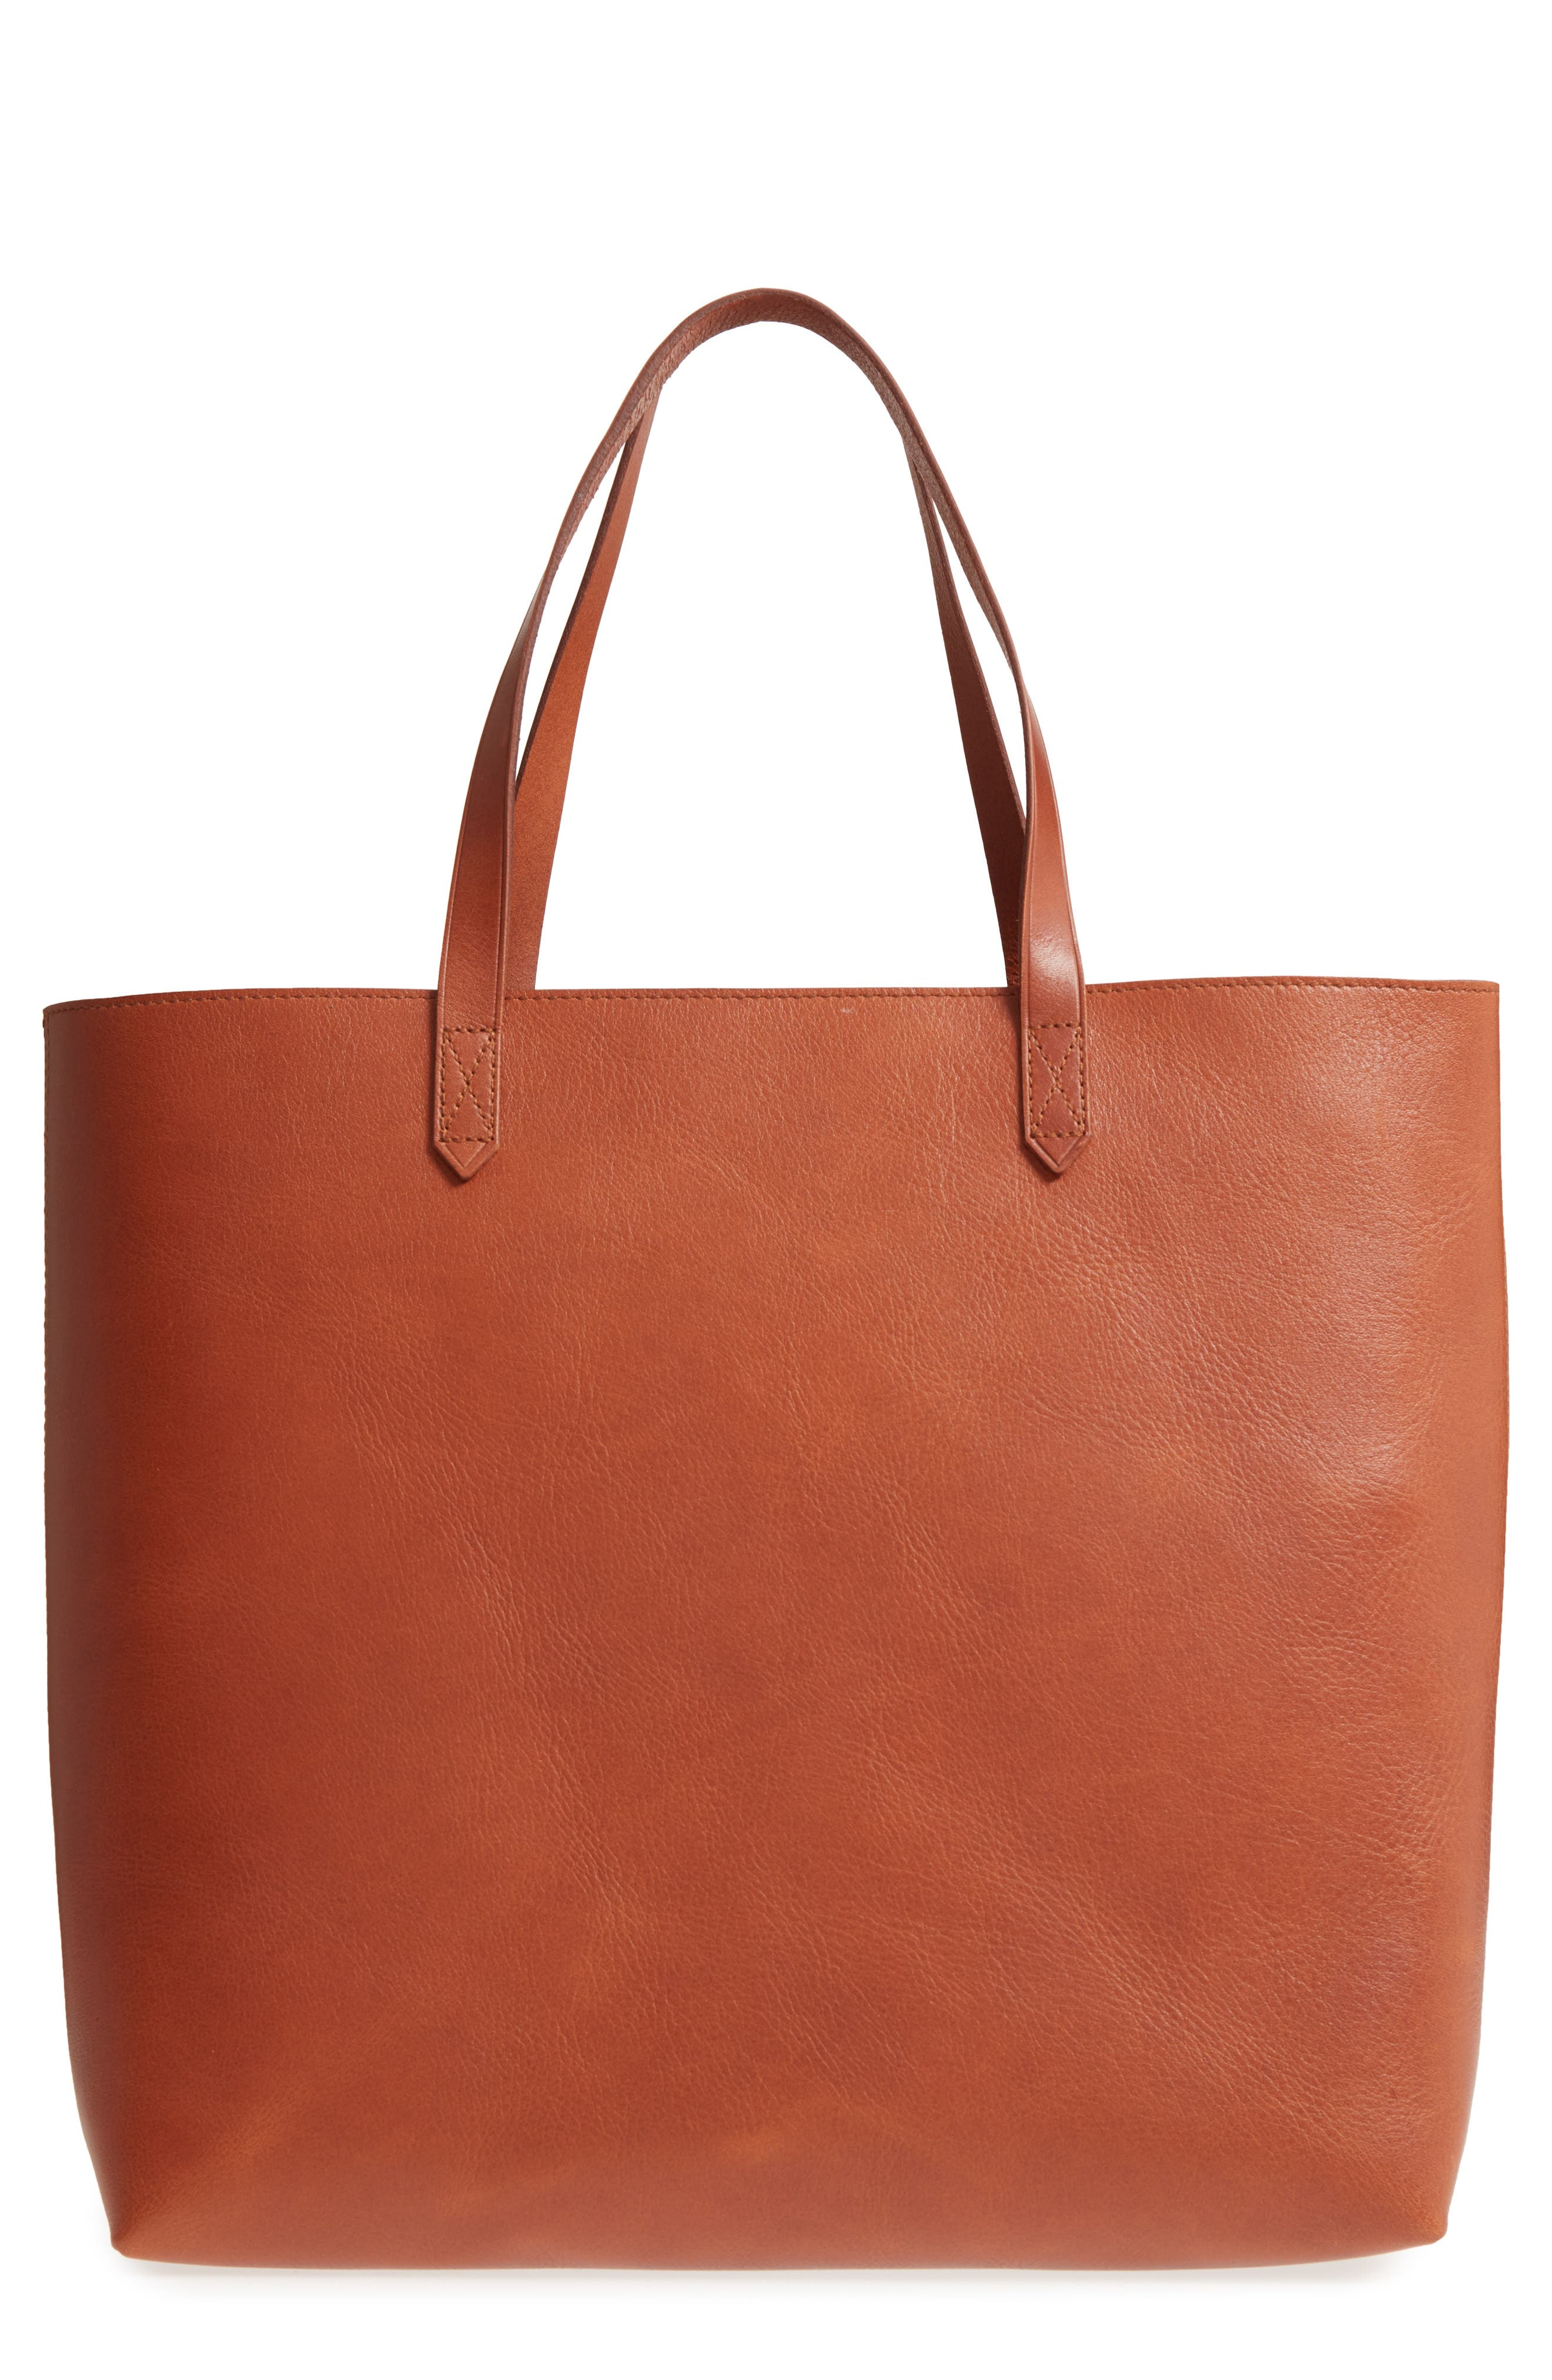 Zip Top Transport Leather Tote,                         Main,                         color, English Saddle